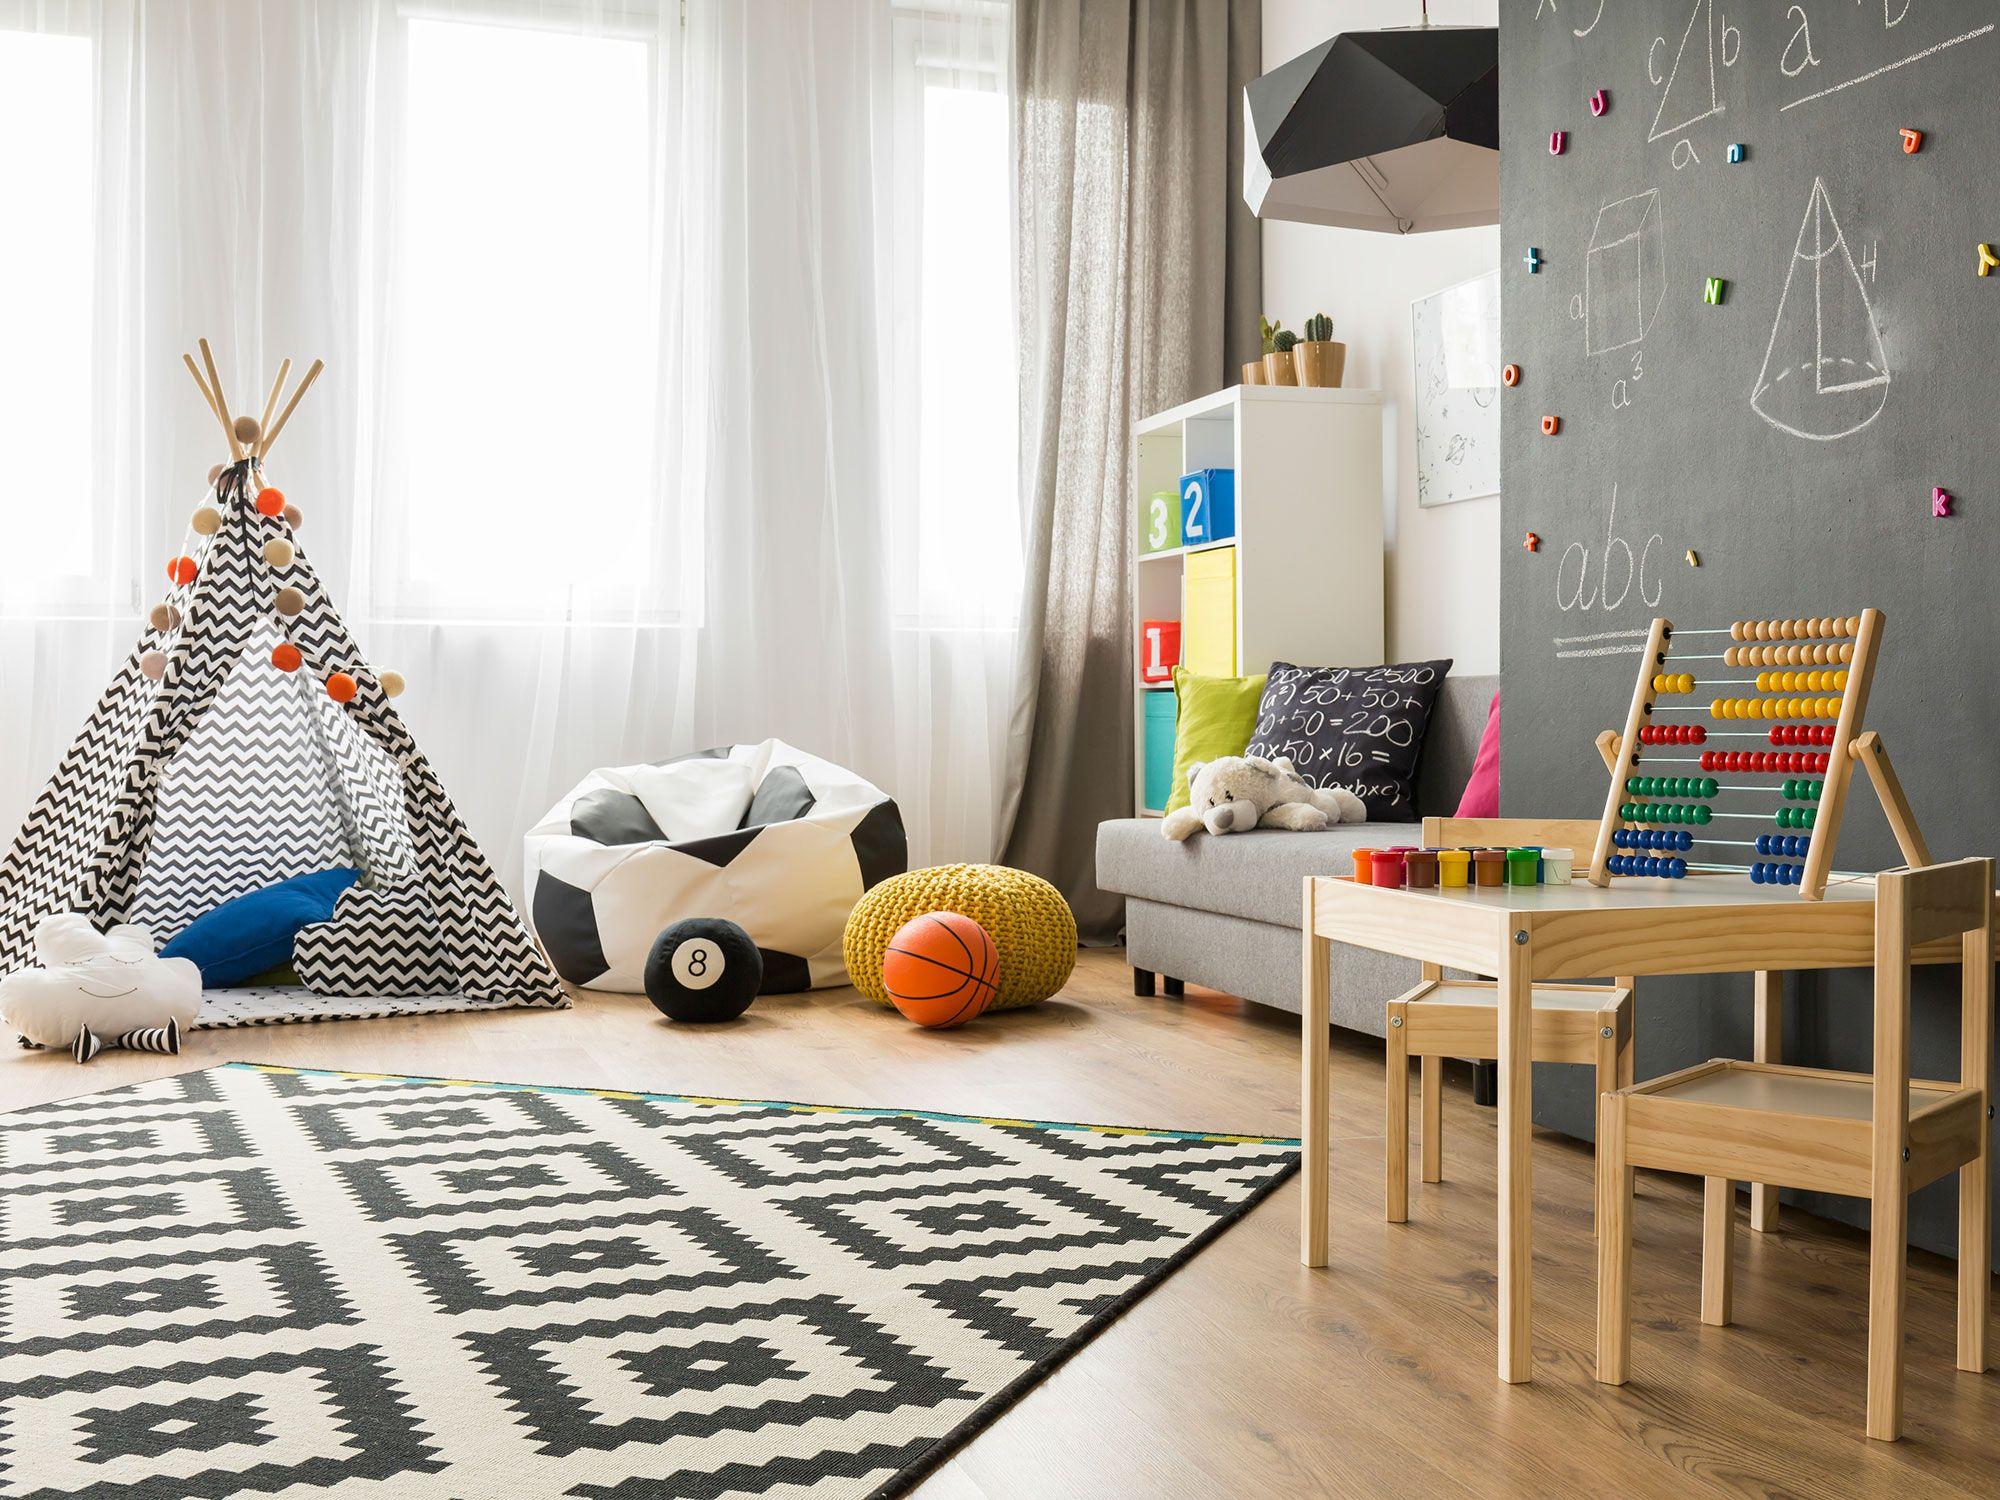 How to get kids to clean up their room | Kids bedroom designs ...